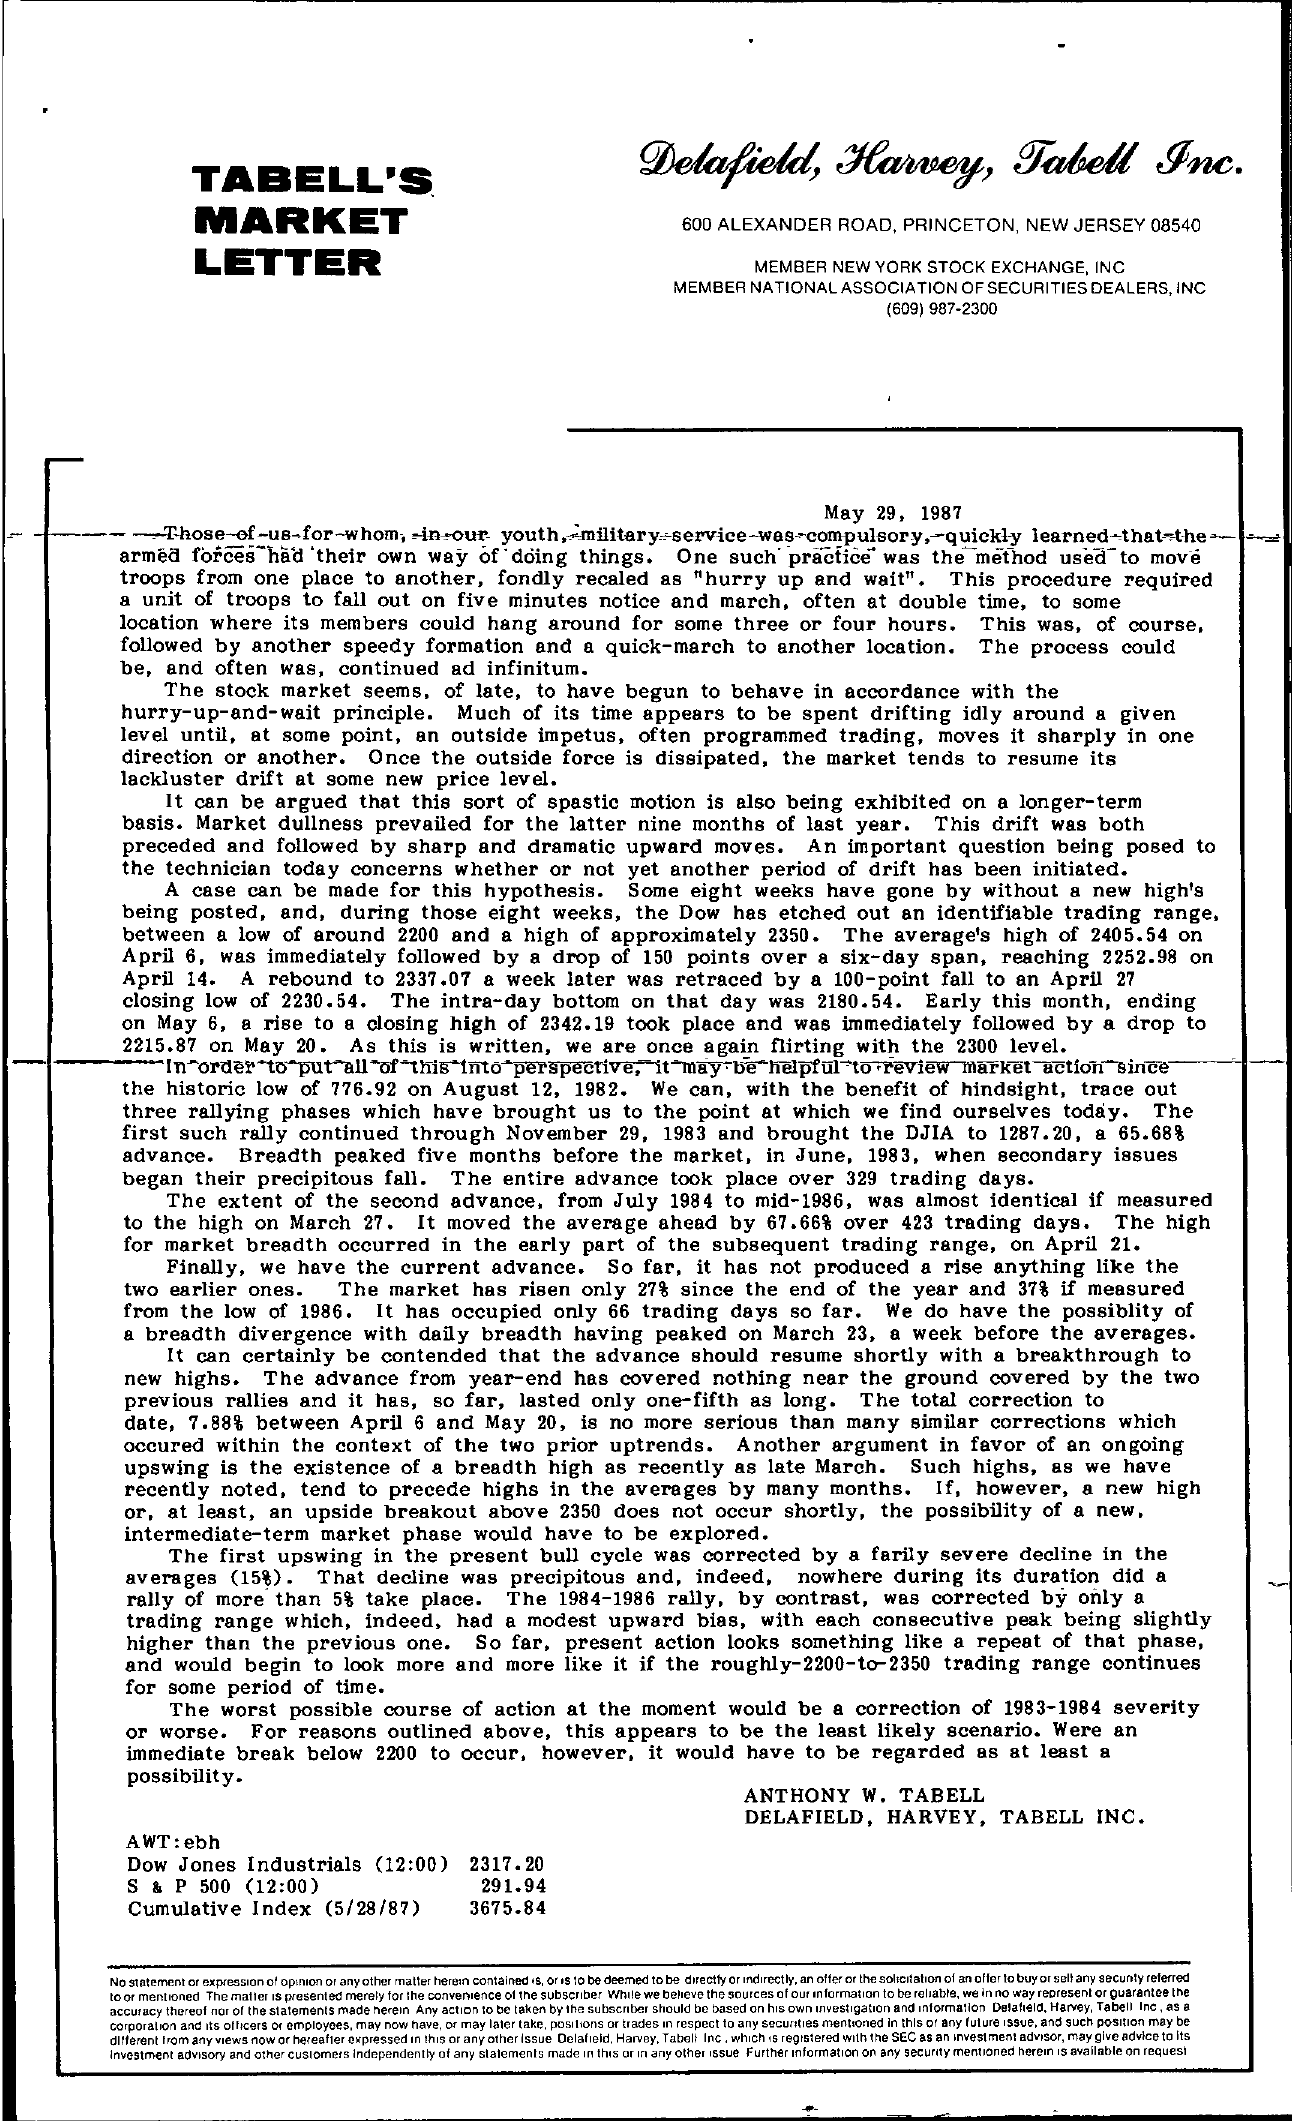 Tabell's Market Letter - May 29, 1987